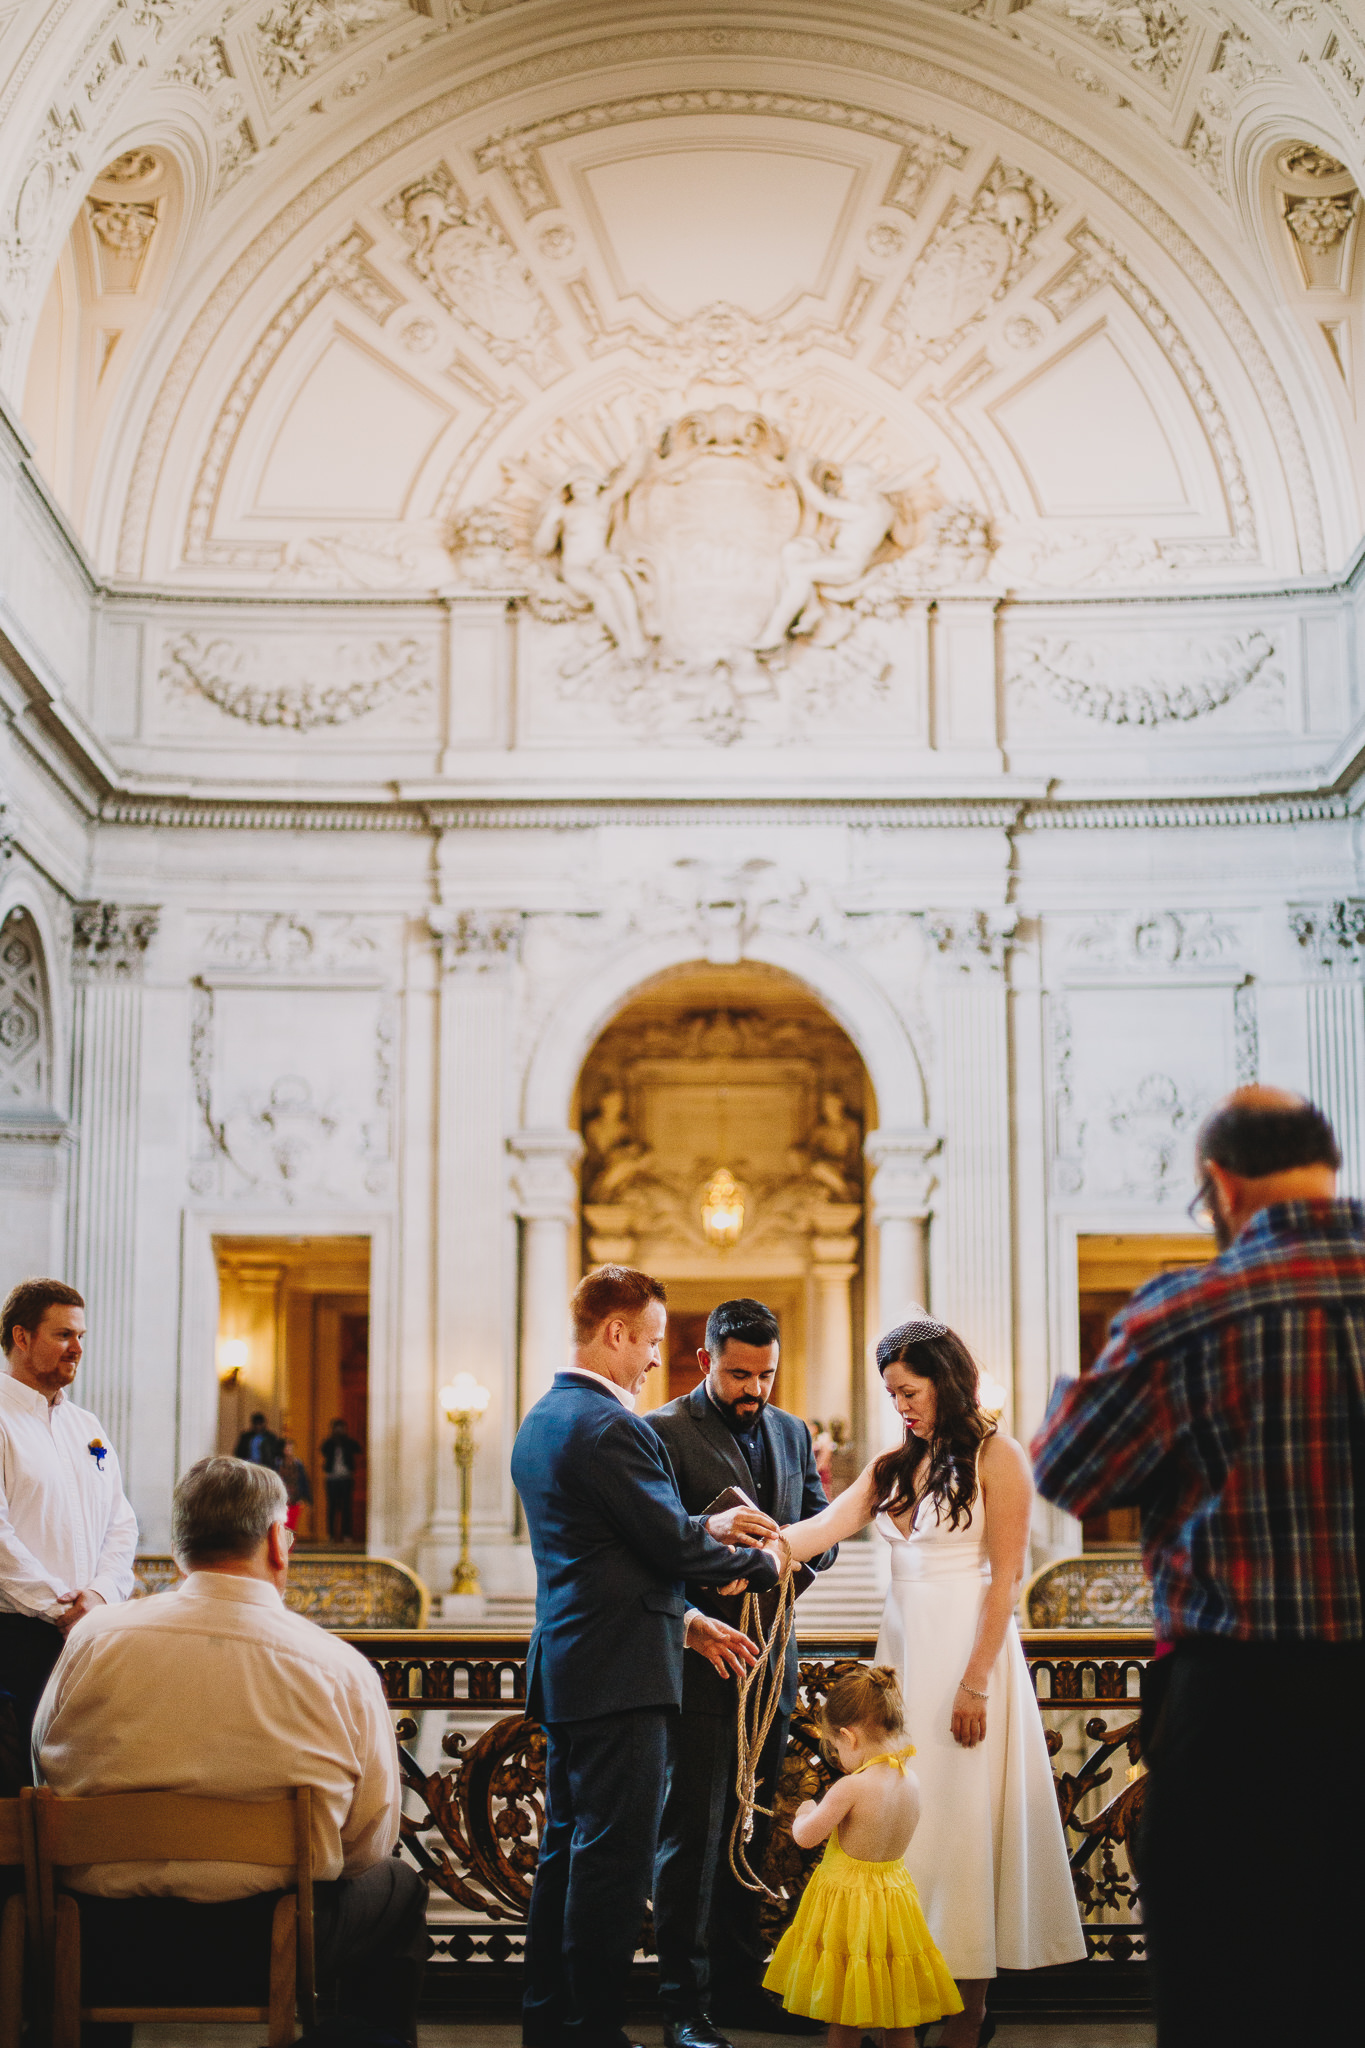 Archer Inspired Photography SF City Hall Elopement Wedding Lifestyle Documentary Affordable Photographer-93.jpg